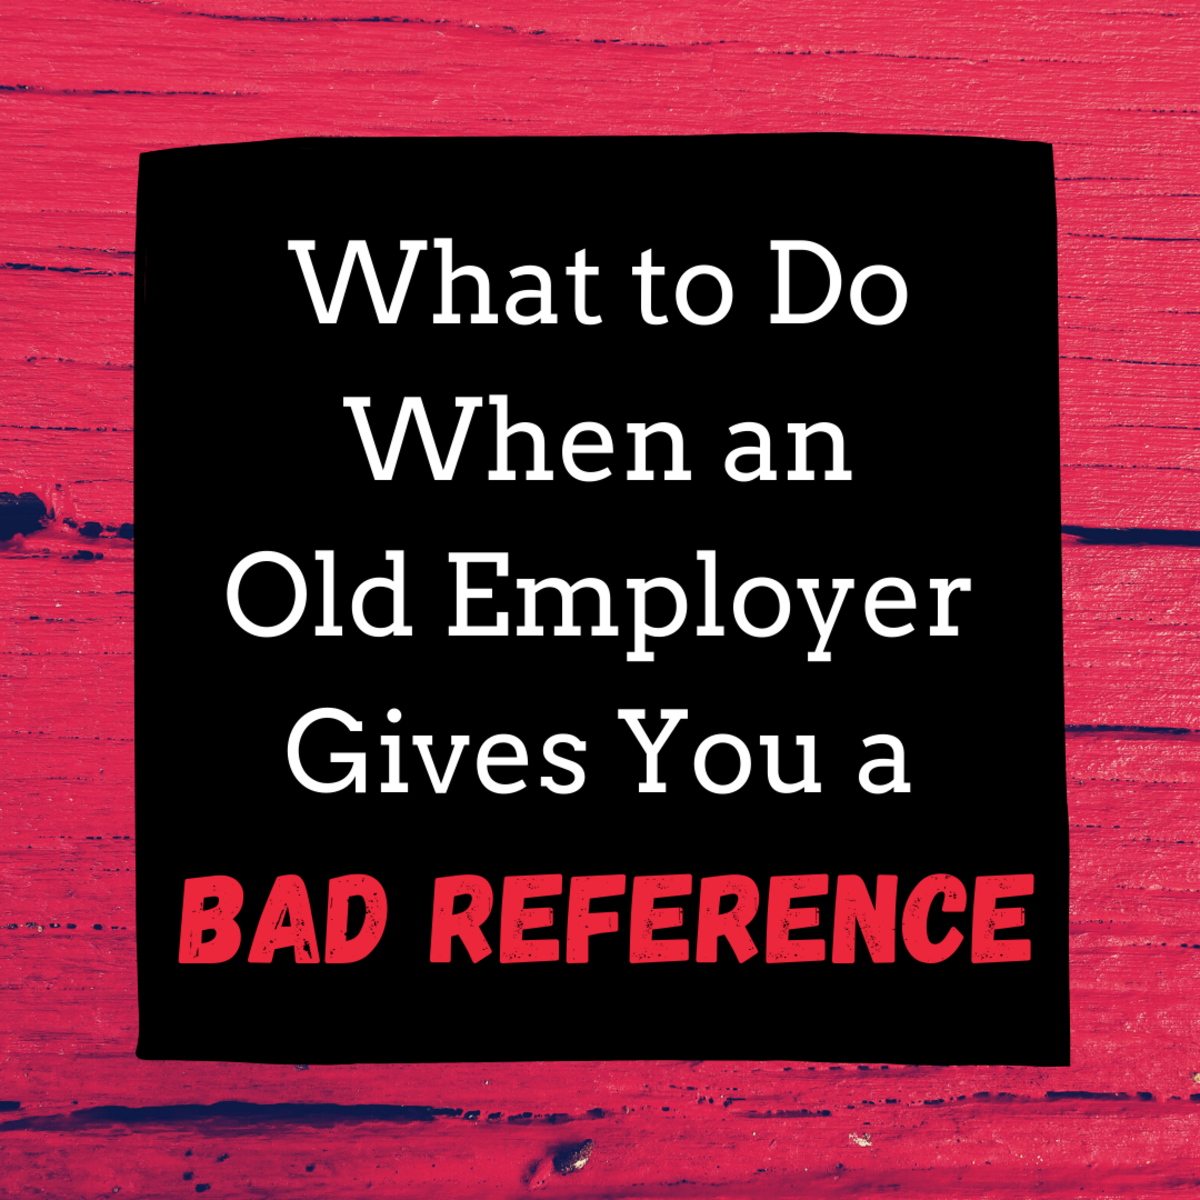 Employee Rights: Can I Sue My Former Employer for Giving Bad References?